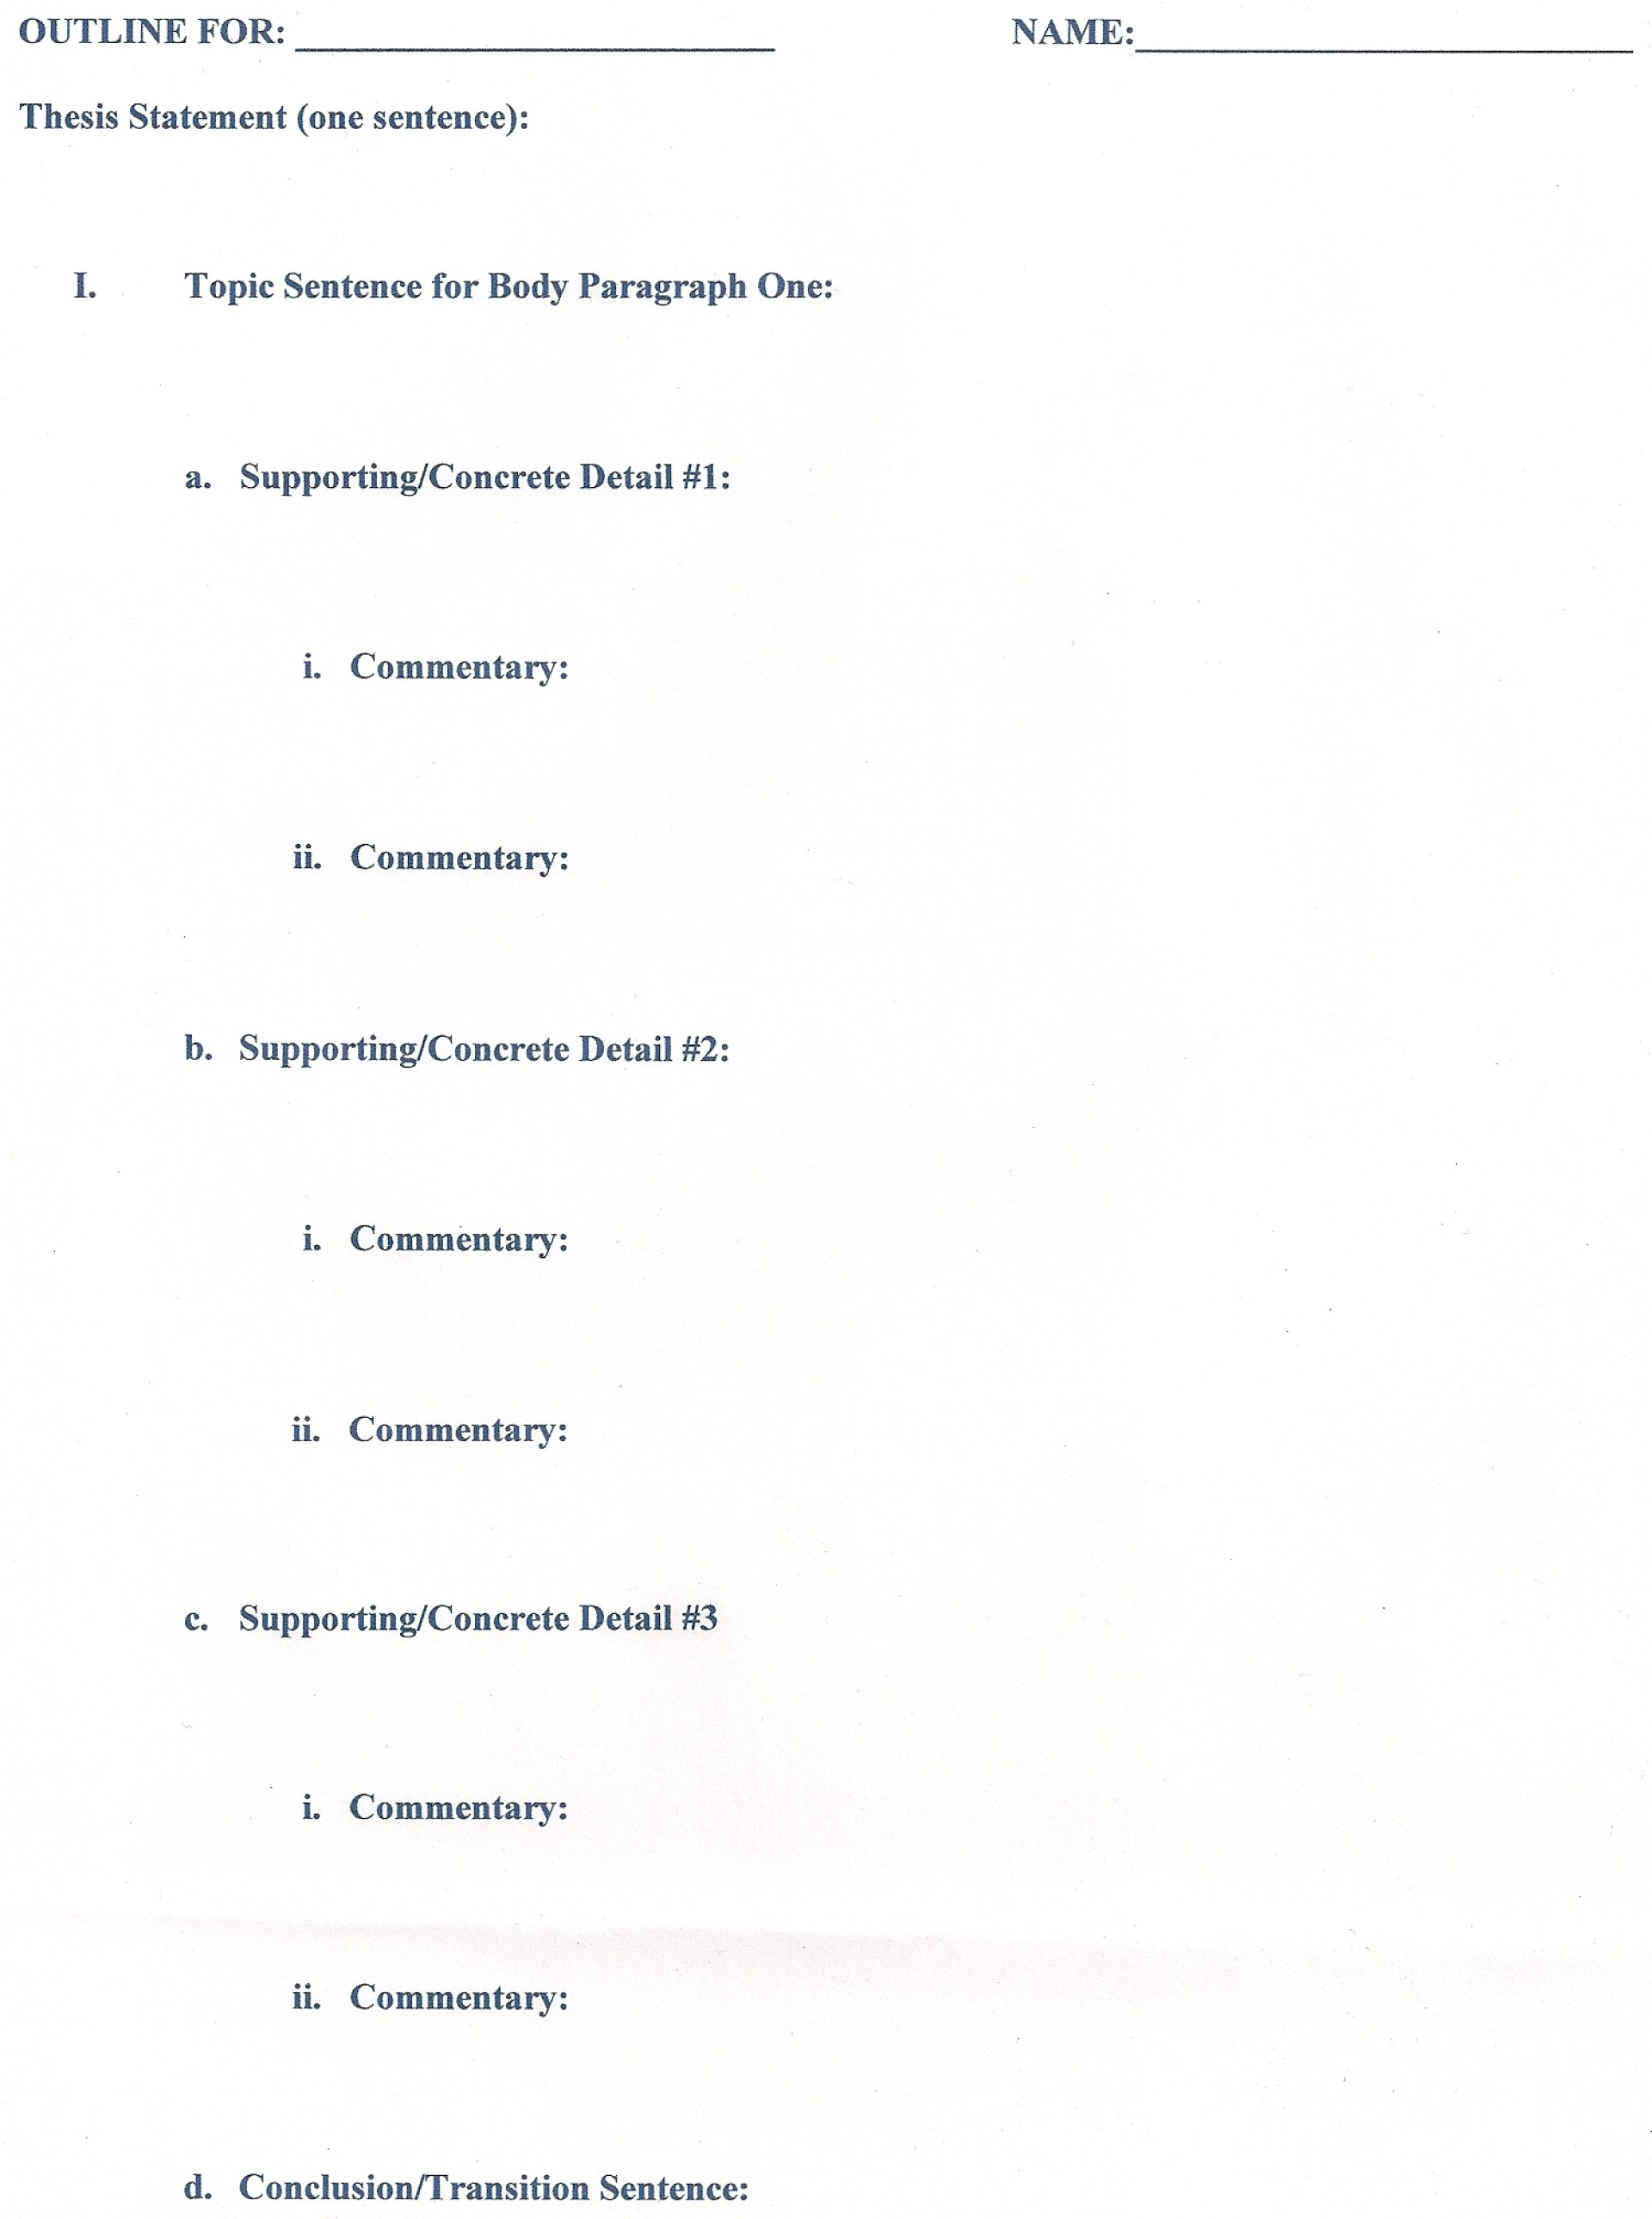 017 Sample Outlines For Researchs Outline Awful Research Papers Writing Example Apa Format 1920